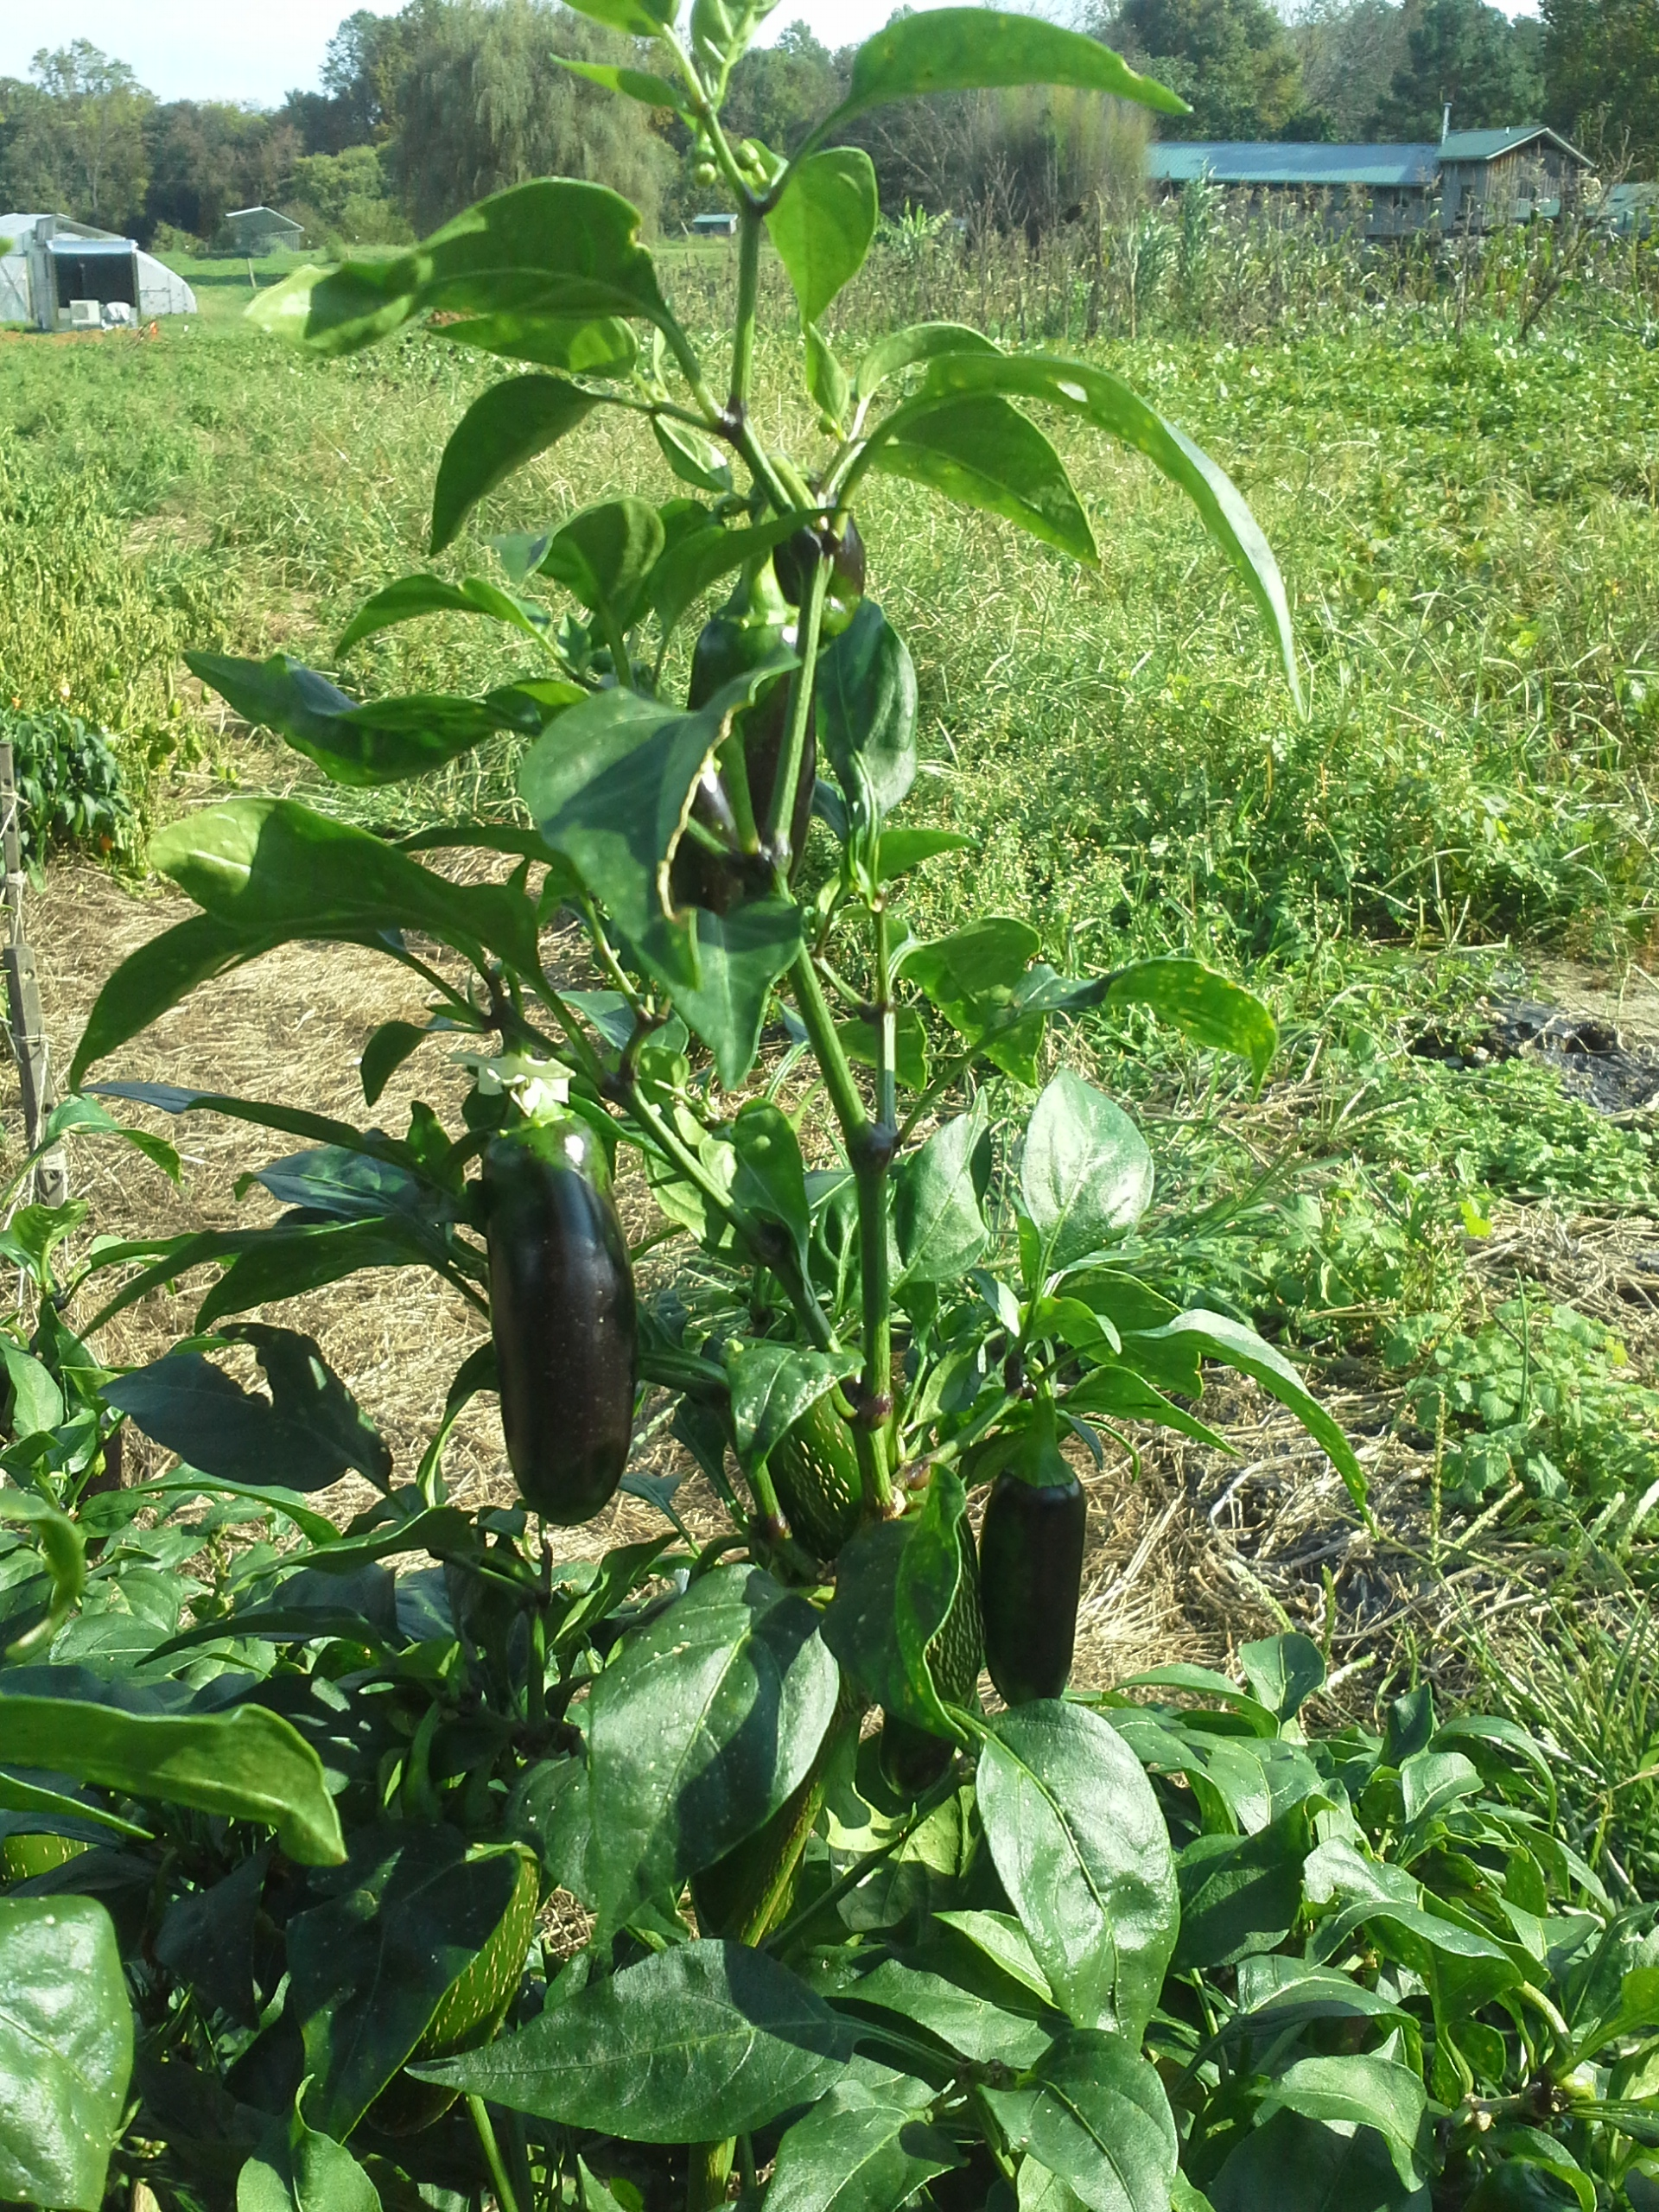 Jalapeno hot pepper plant with a fruit changing from green to red via black. Photo Bridget Aleshire